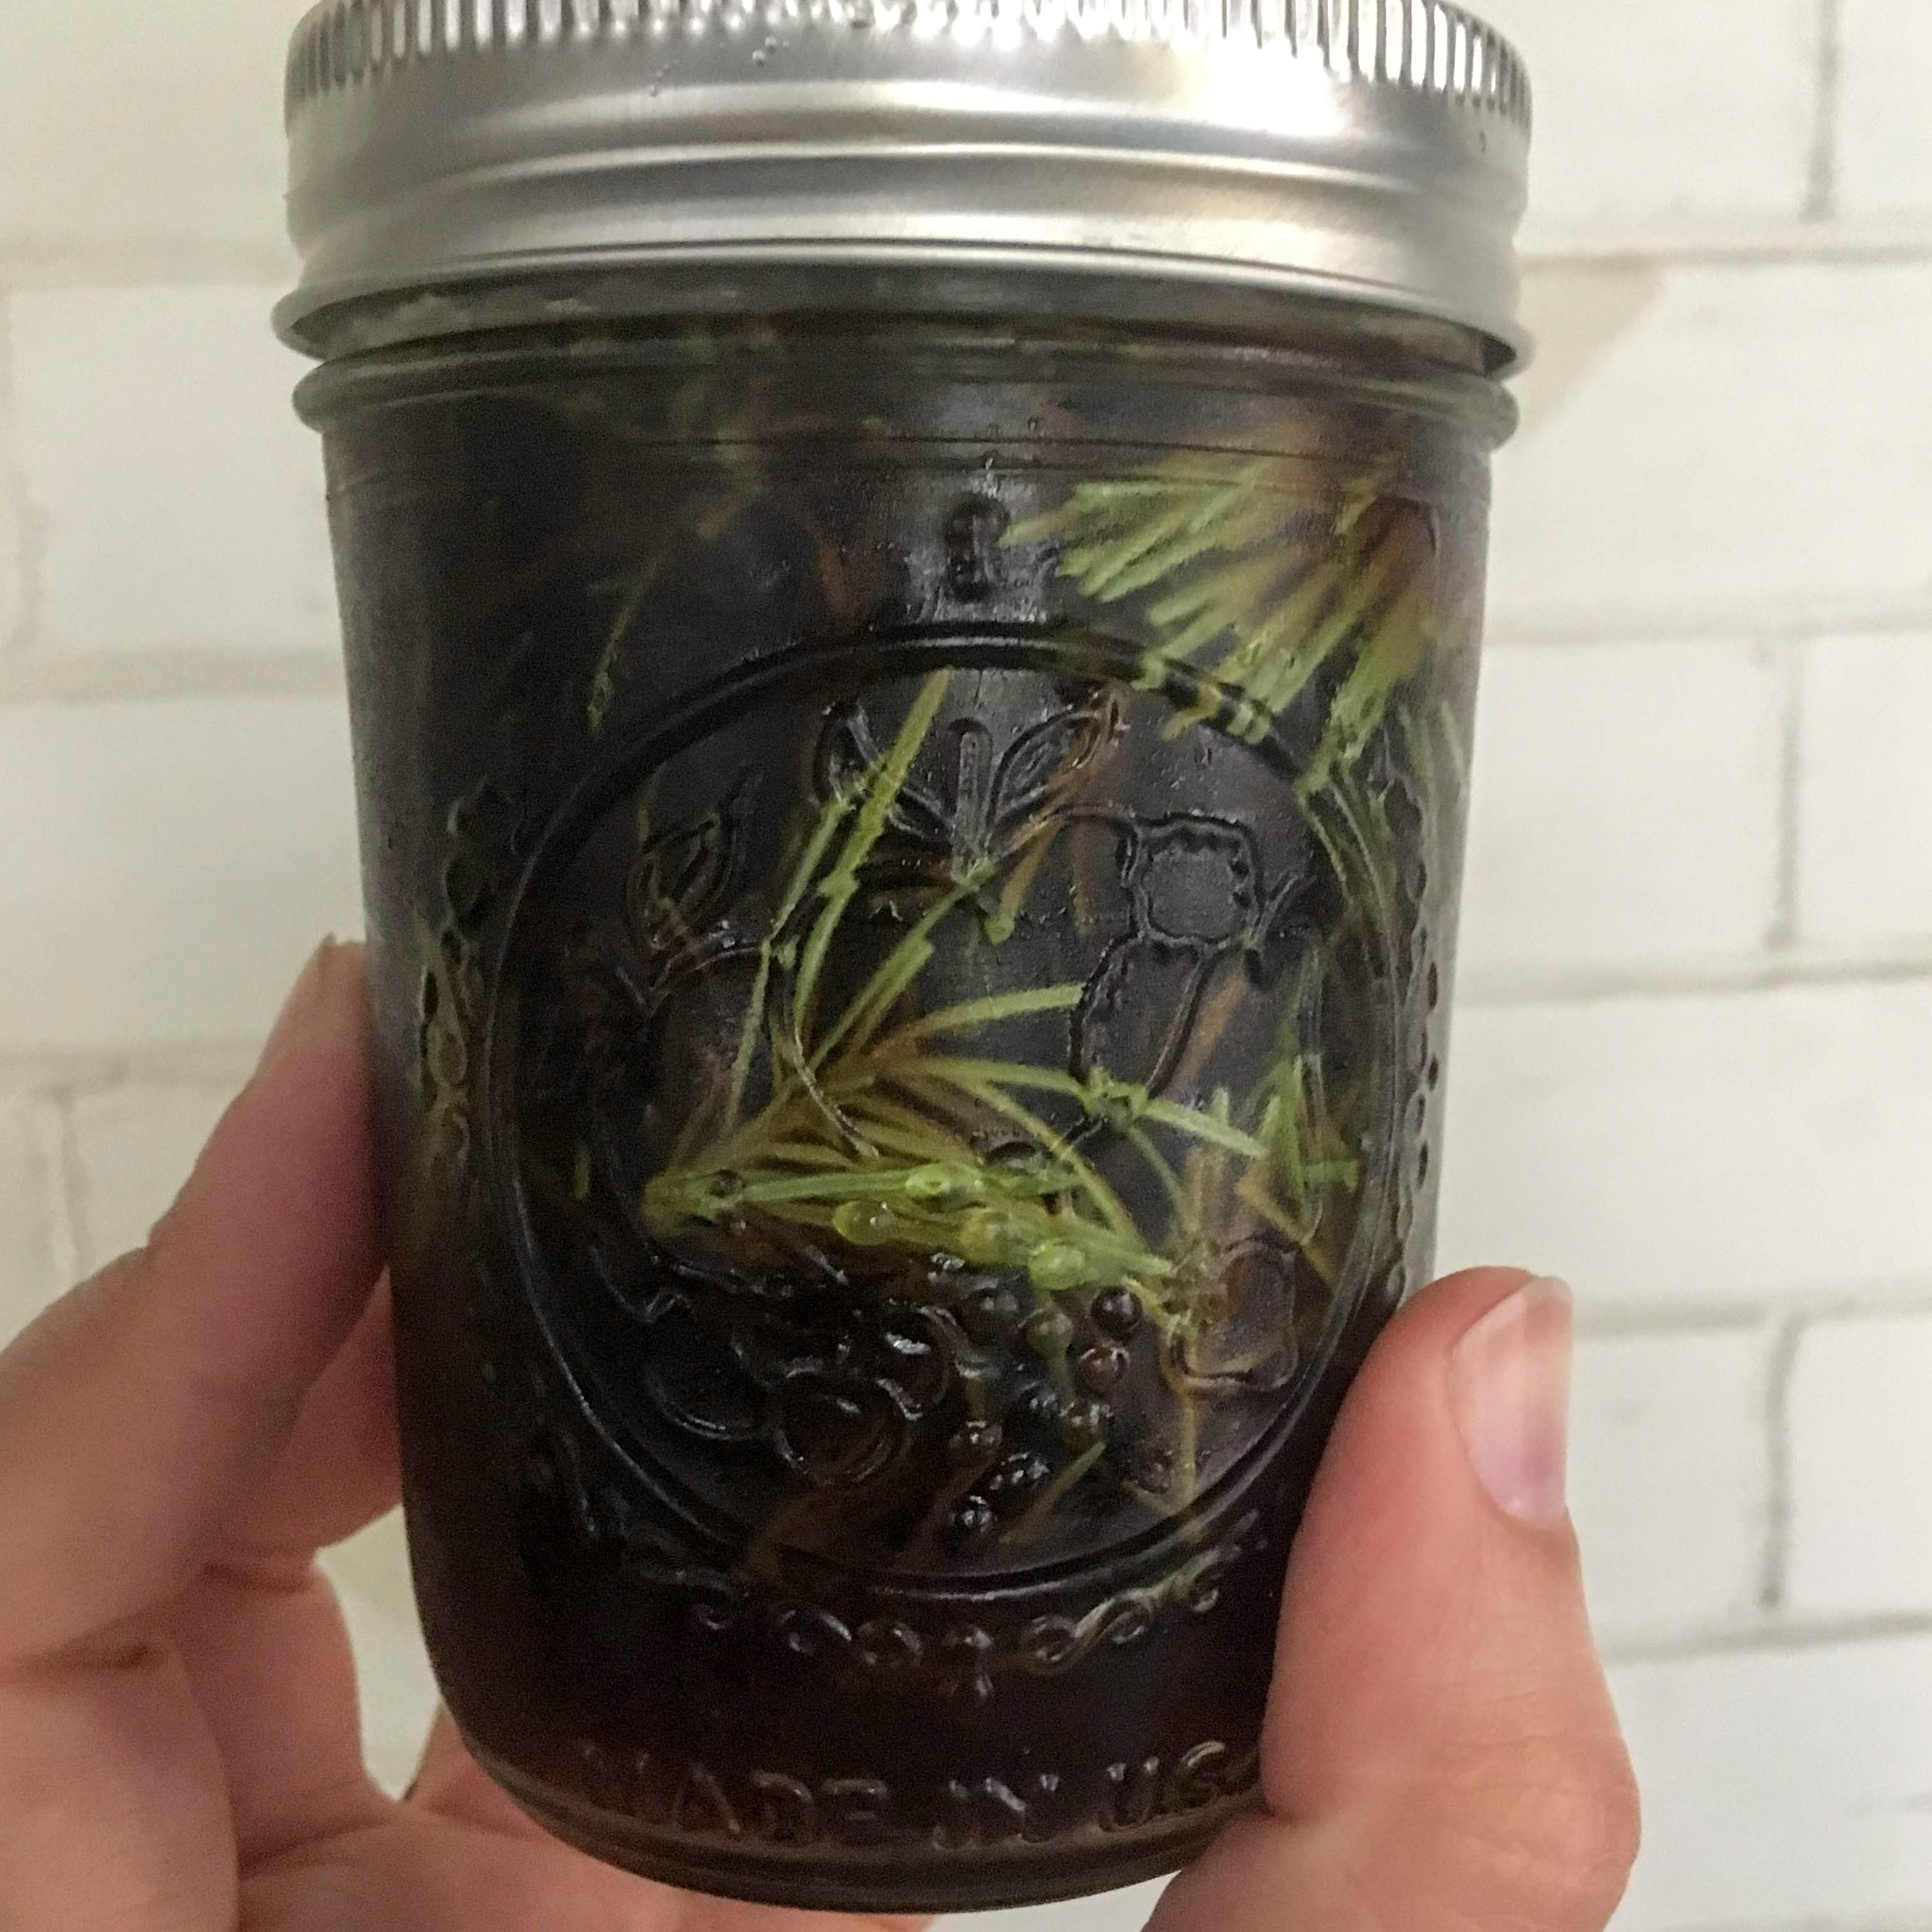 Douglas fir ( Pseudotsuga menziesii ) infusing in maple syrup.